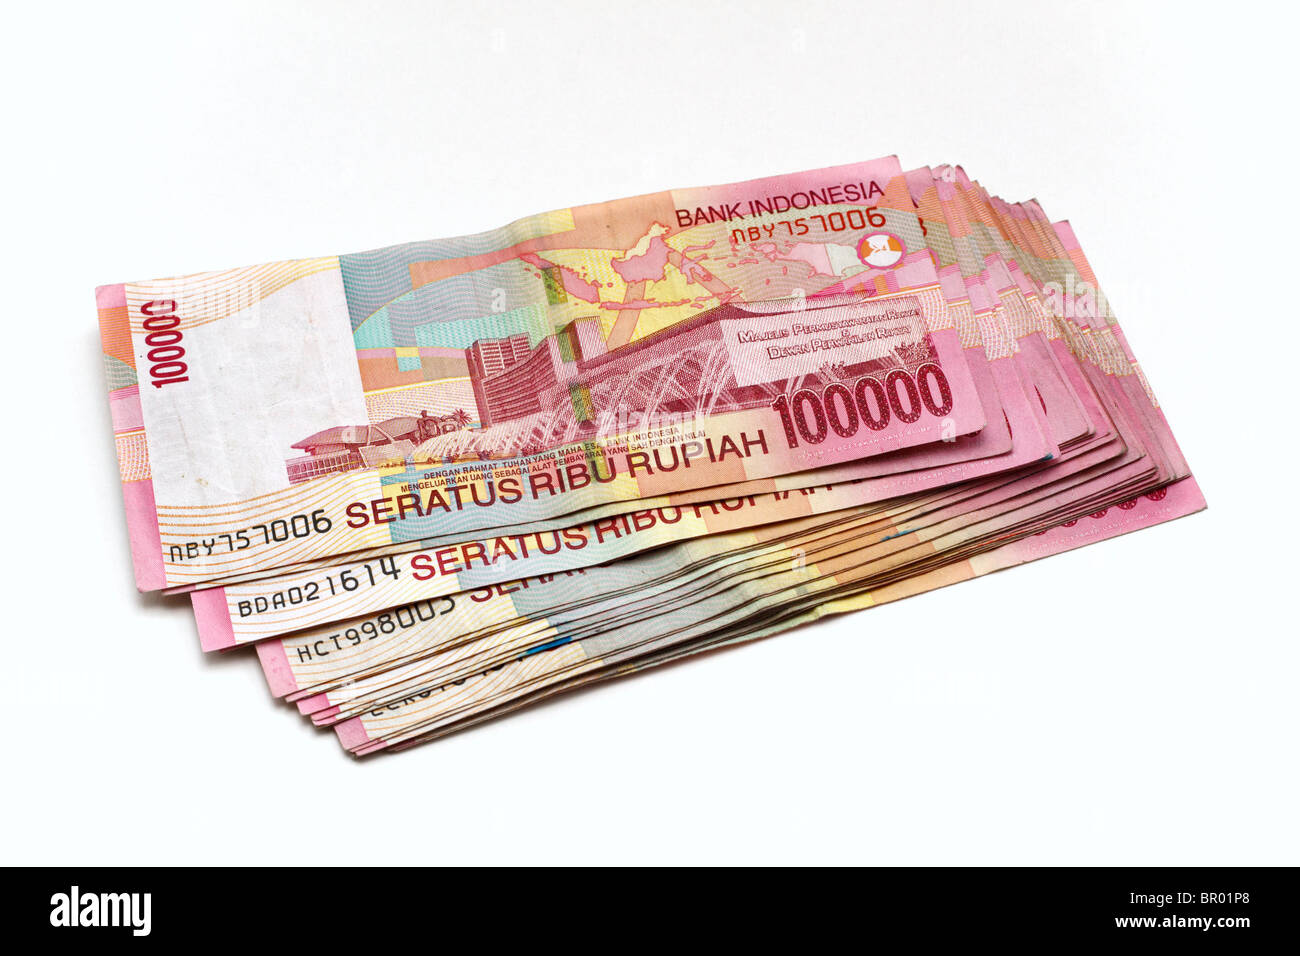 Indonesian One Hundred Thousand Rupiah Banknotes Stock Photo